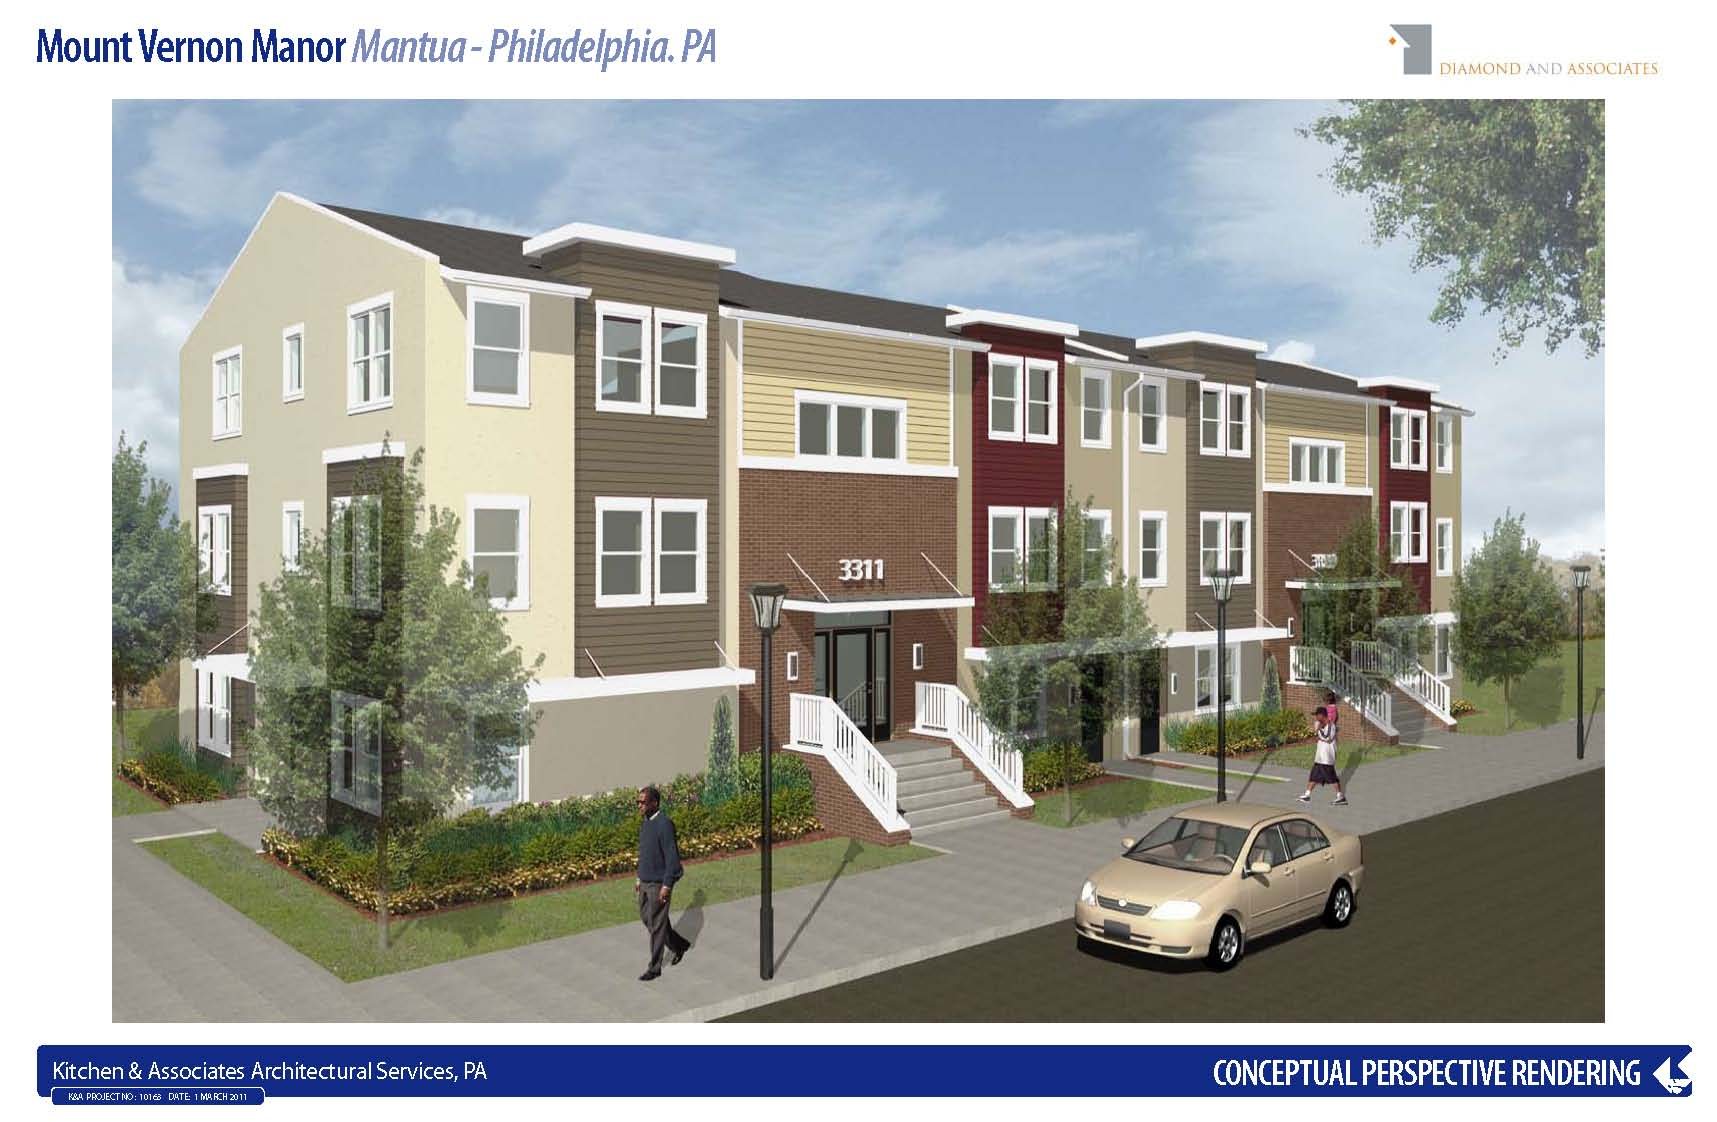 More redevelopment in mantua philadelphiaheights for 3 unit apartment building plans